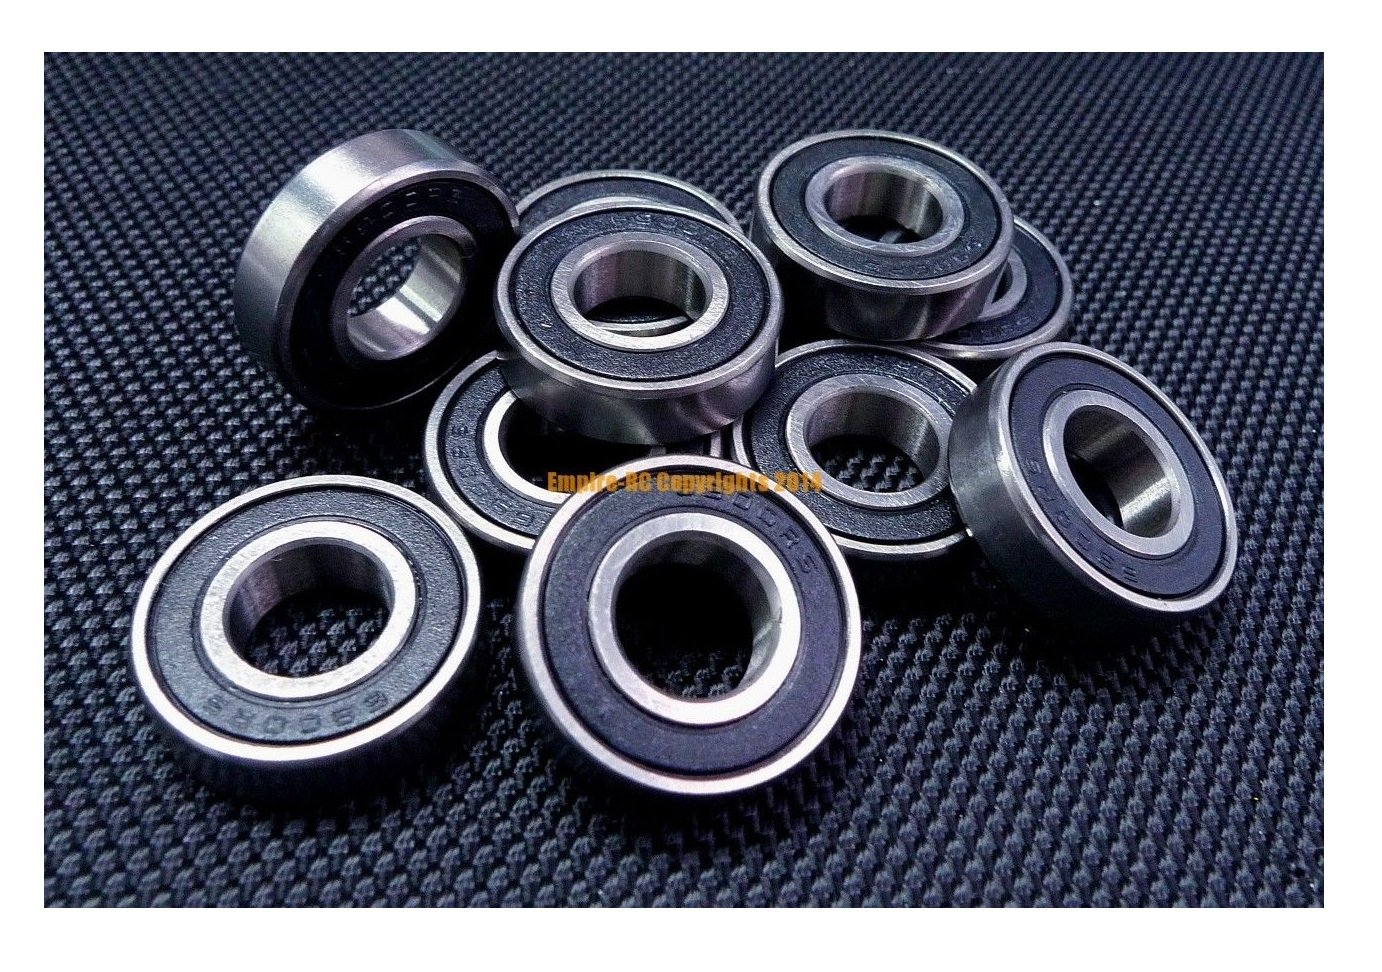 10 pcs 6903 2RS double rubber sealed ball bearing 17x 30x 7 mm